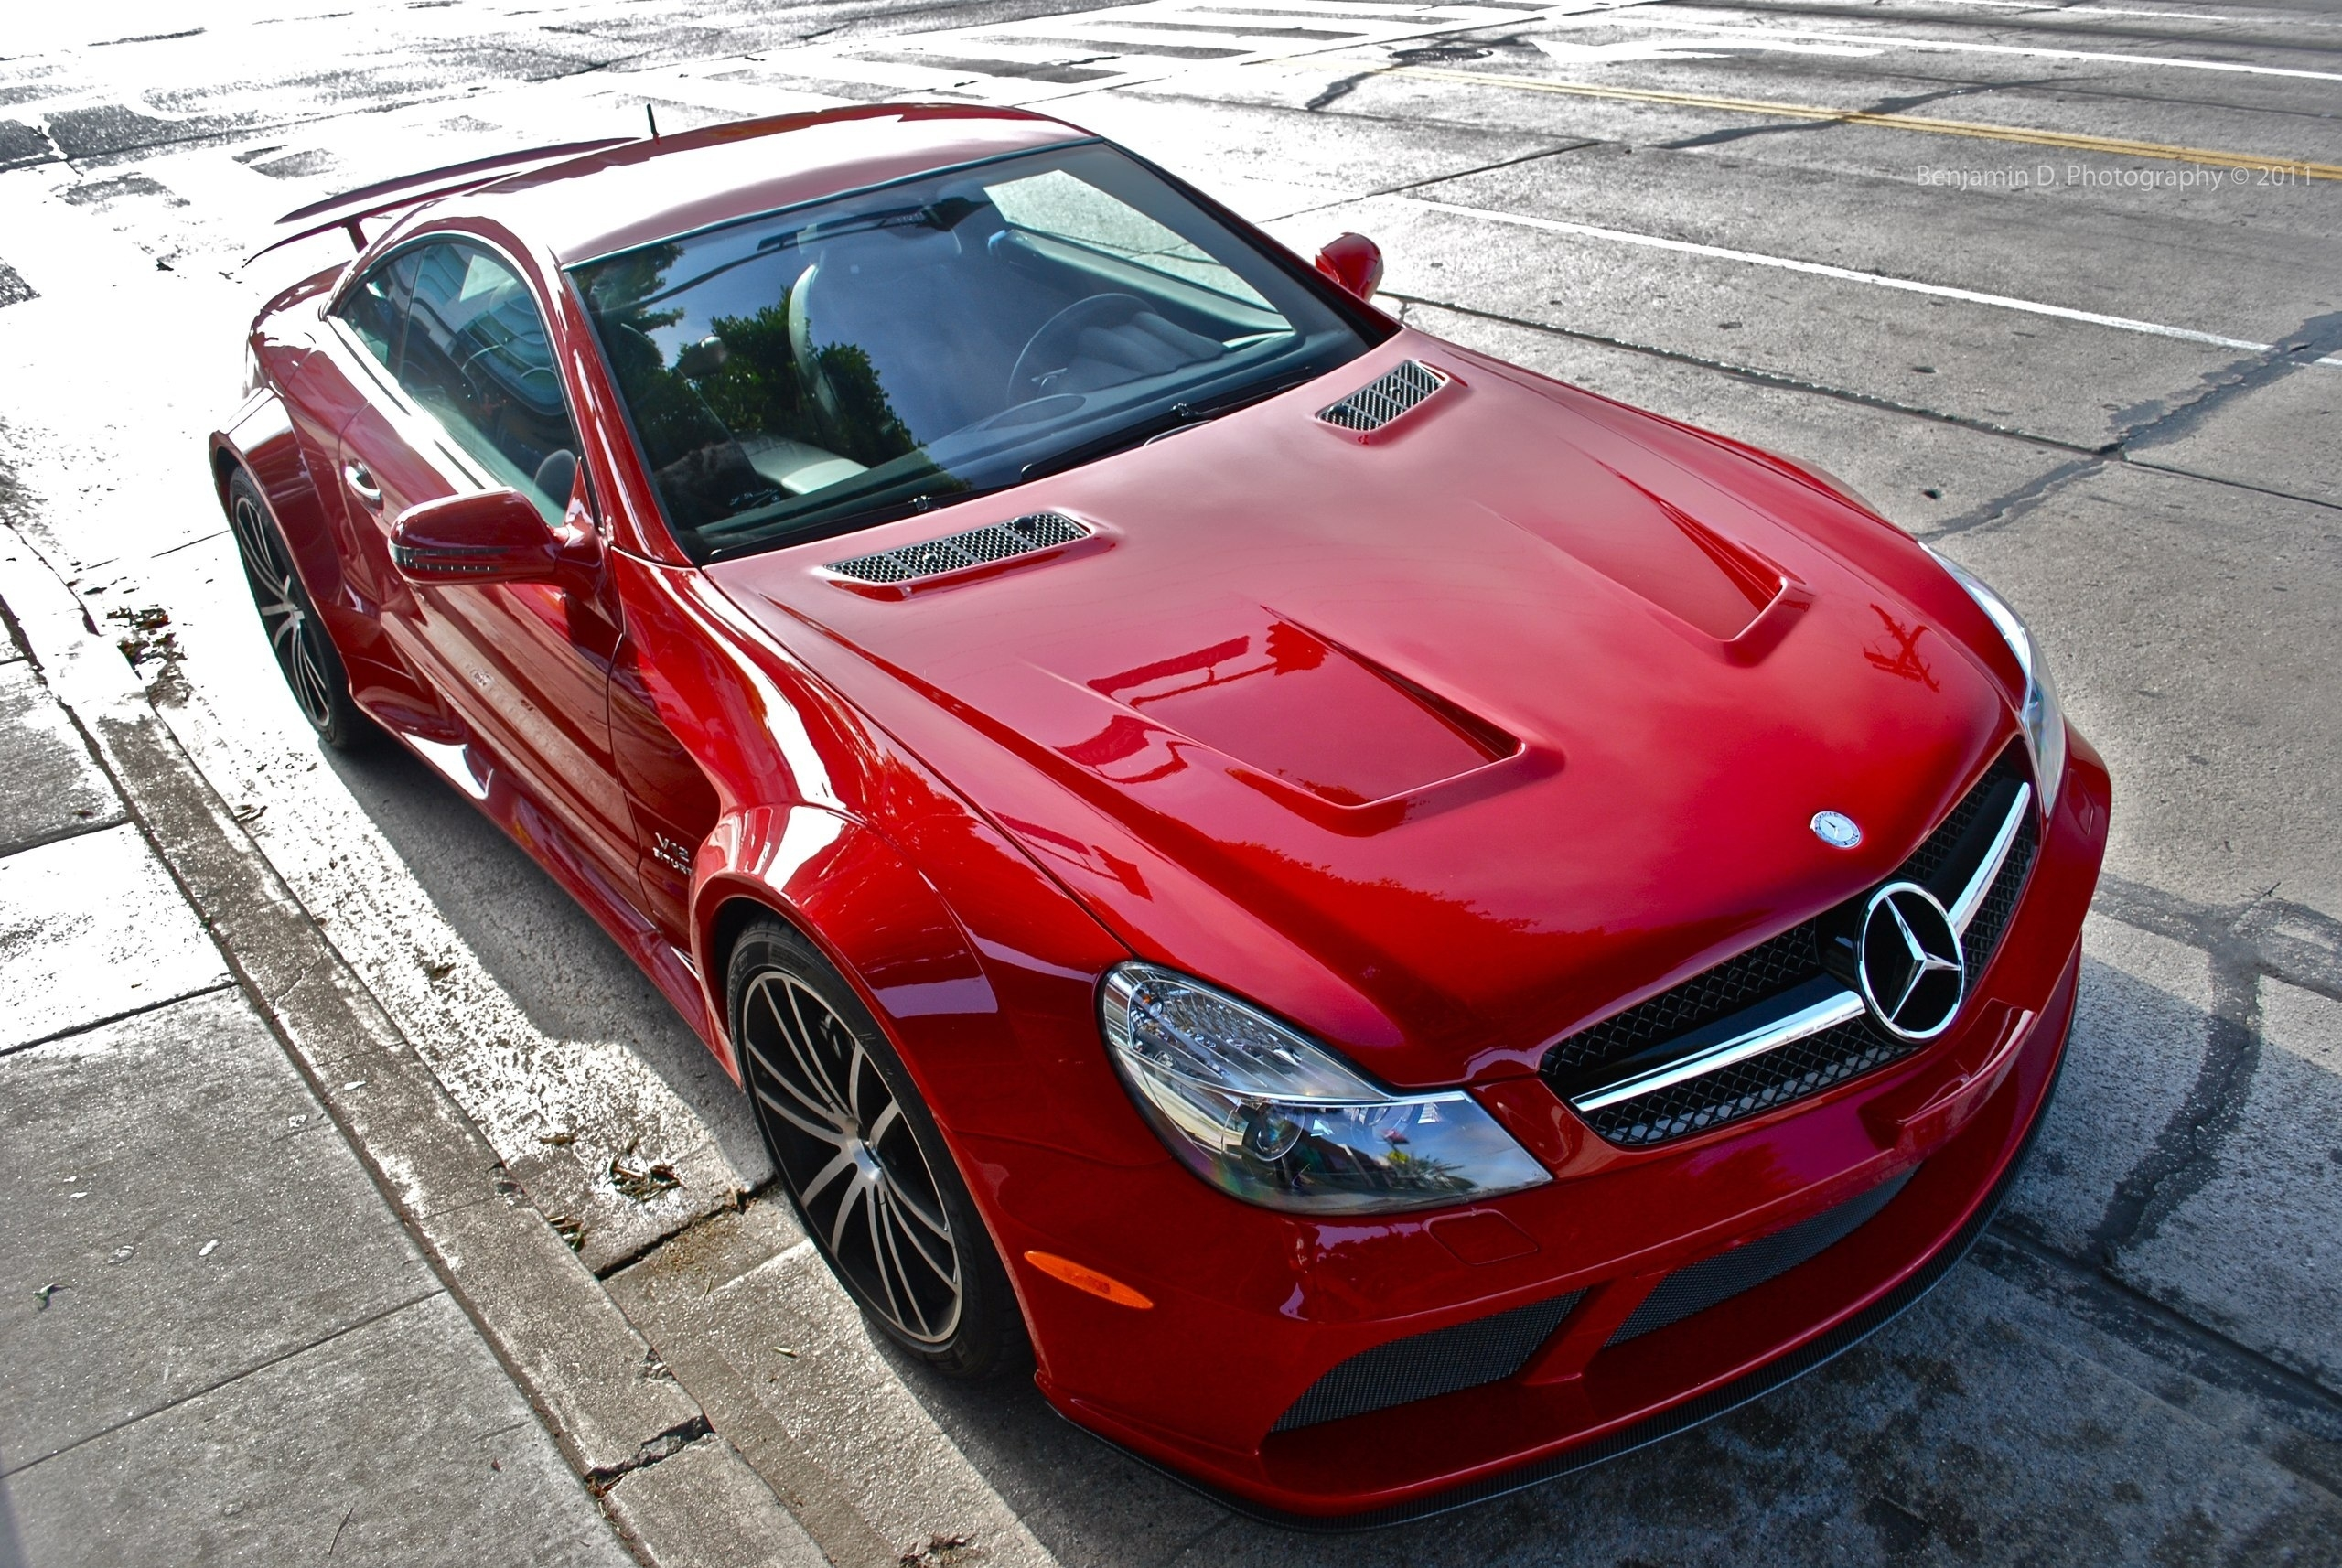 85428 free wallpaper 1125x2436 for phone, download images Auto, Cars, Car, Machine, Mersedes-Benz Sl65 Amg, Mercedes-Benz Sl65 Amg 1125x2436 for mobile